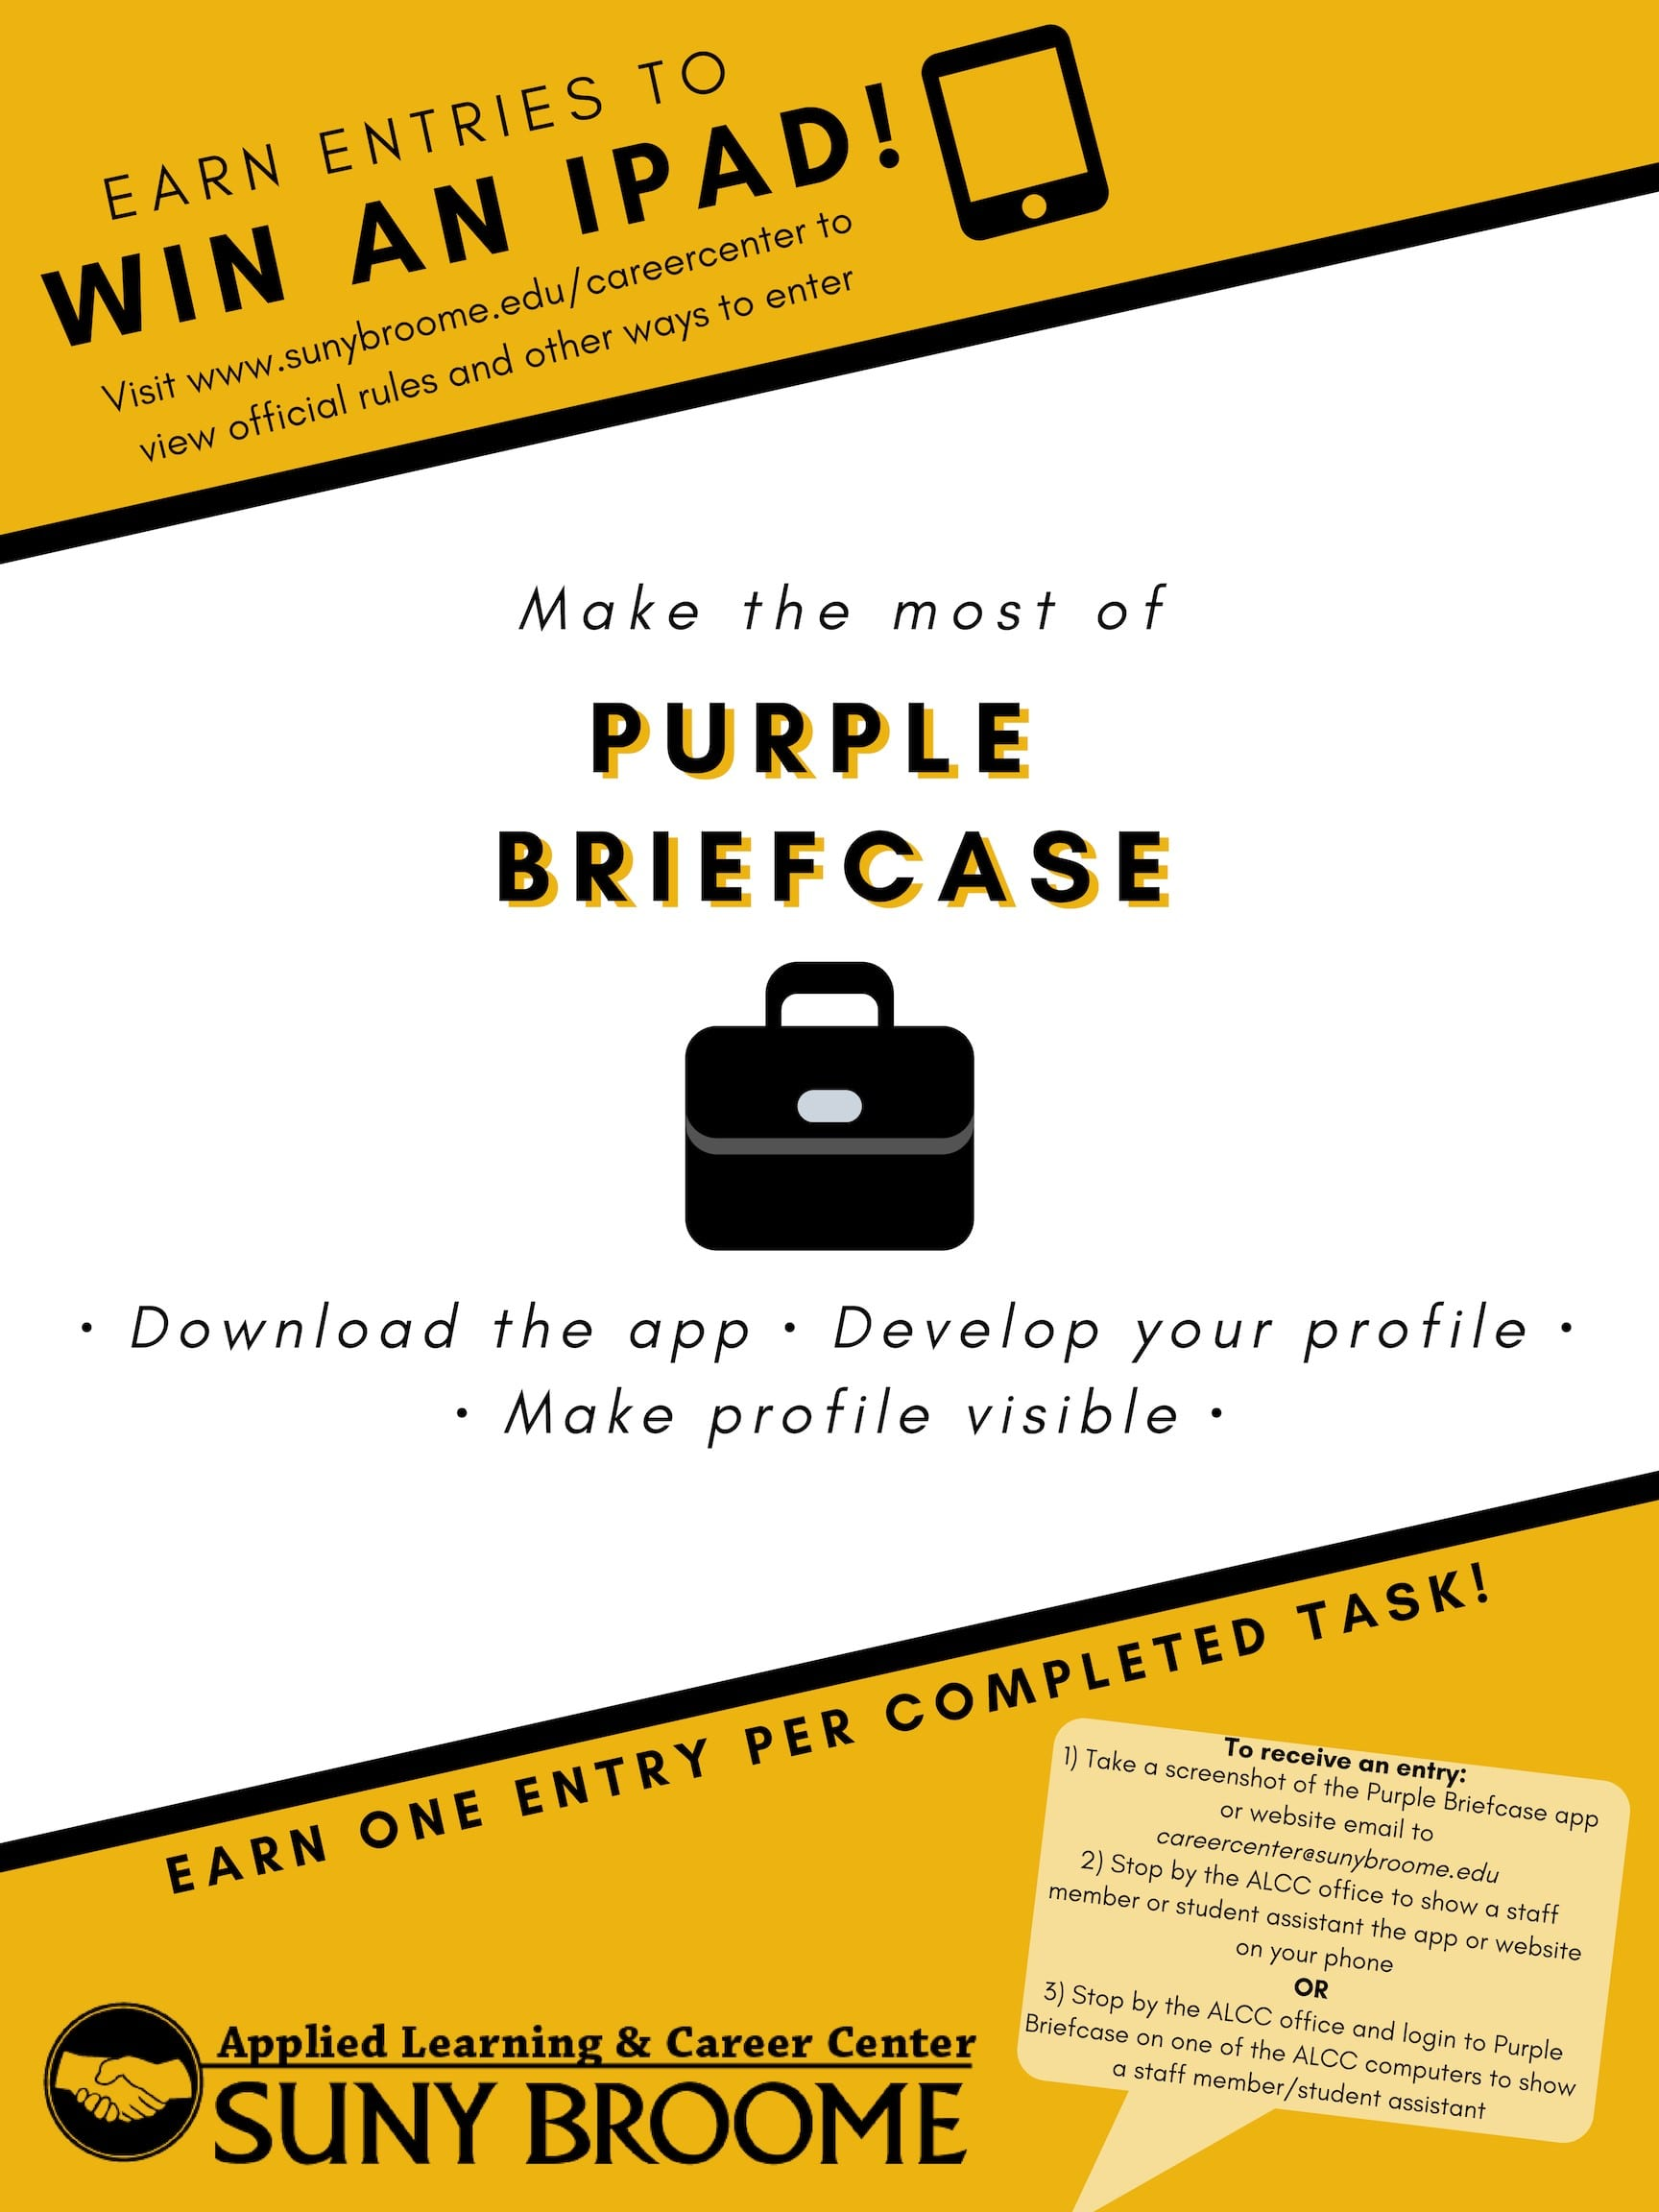 Learn about Purple Briefcase while earning entries to win an iPad!